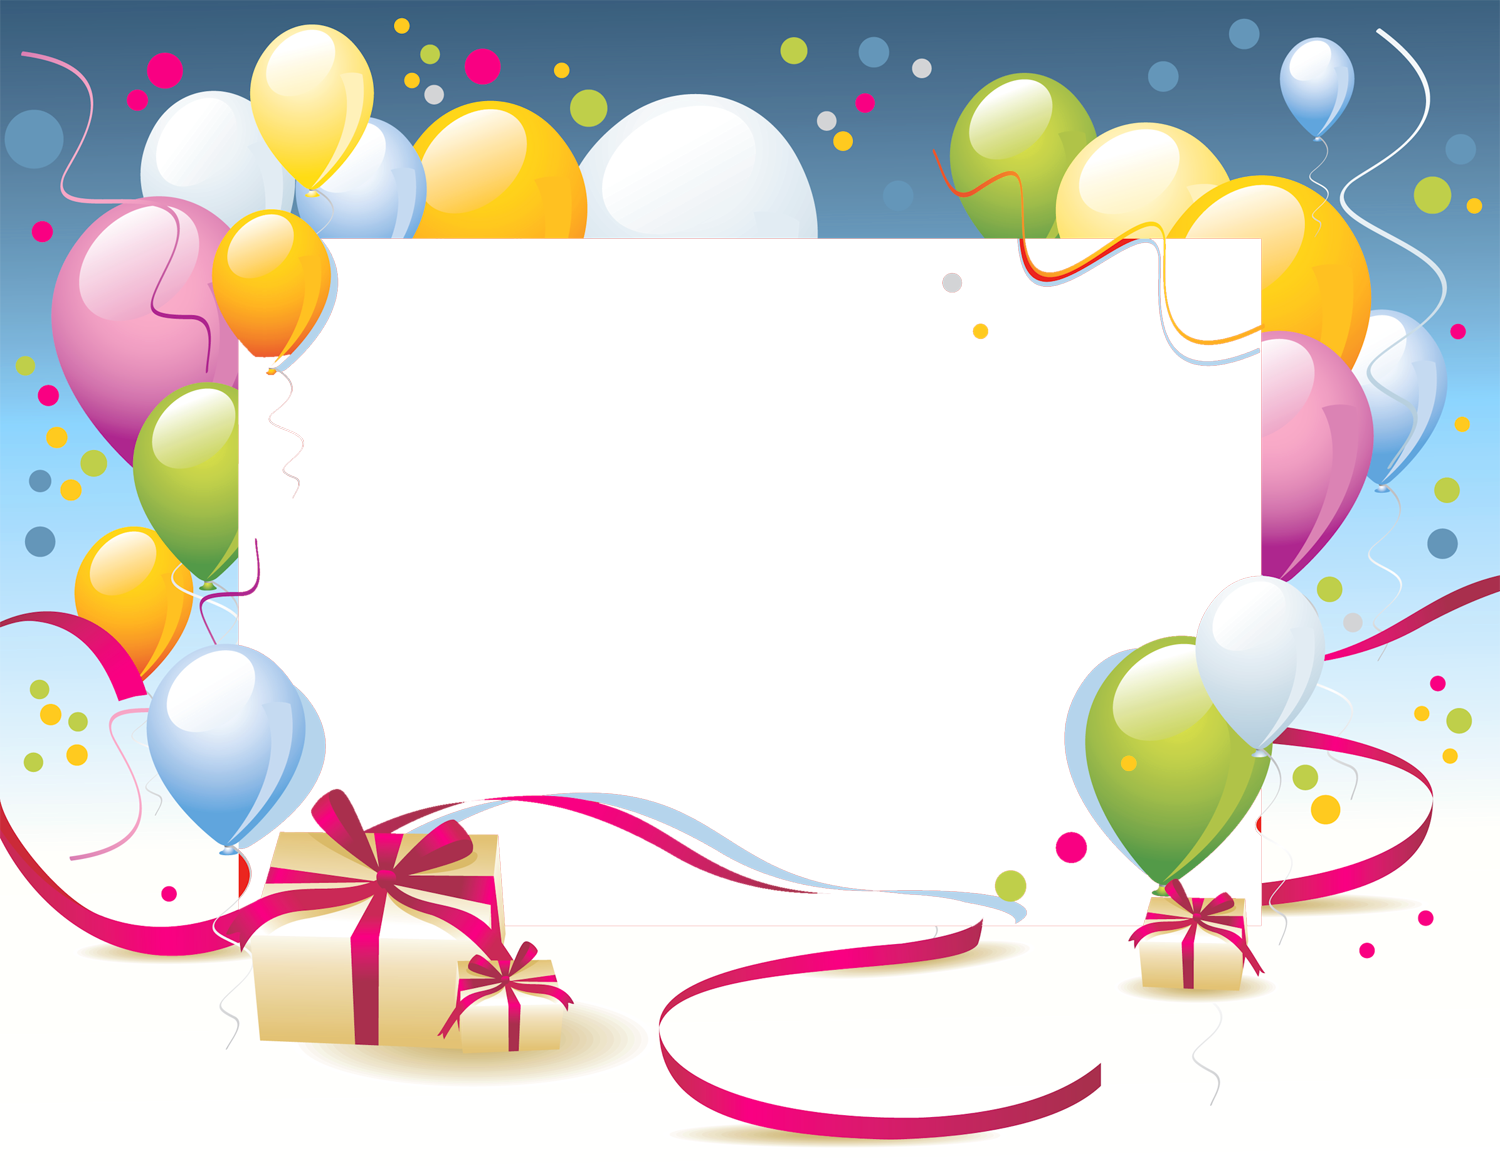 Frame clipart happy birthday Transparent Frame PNG Frame фонове